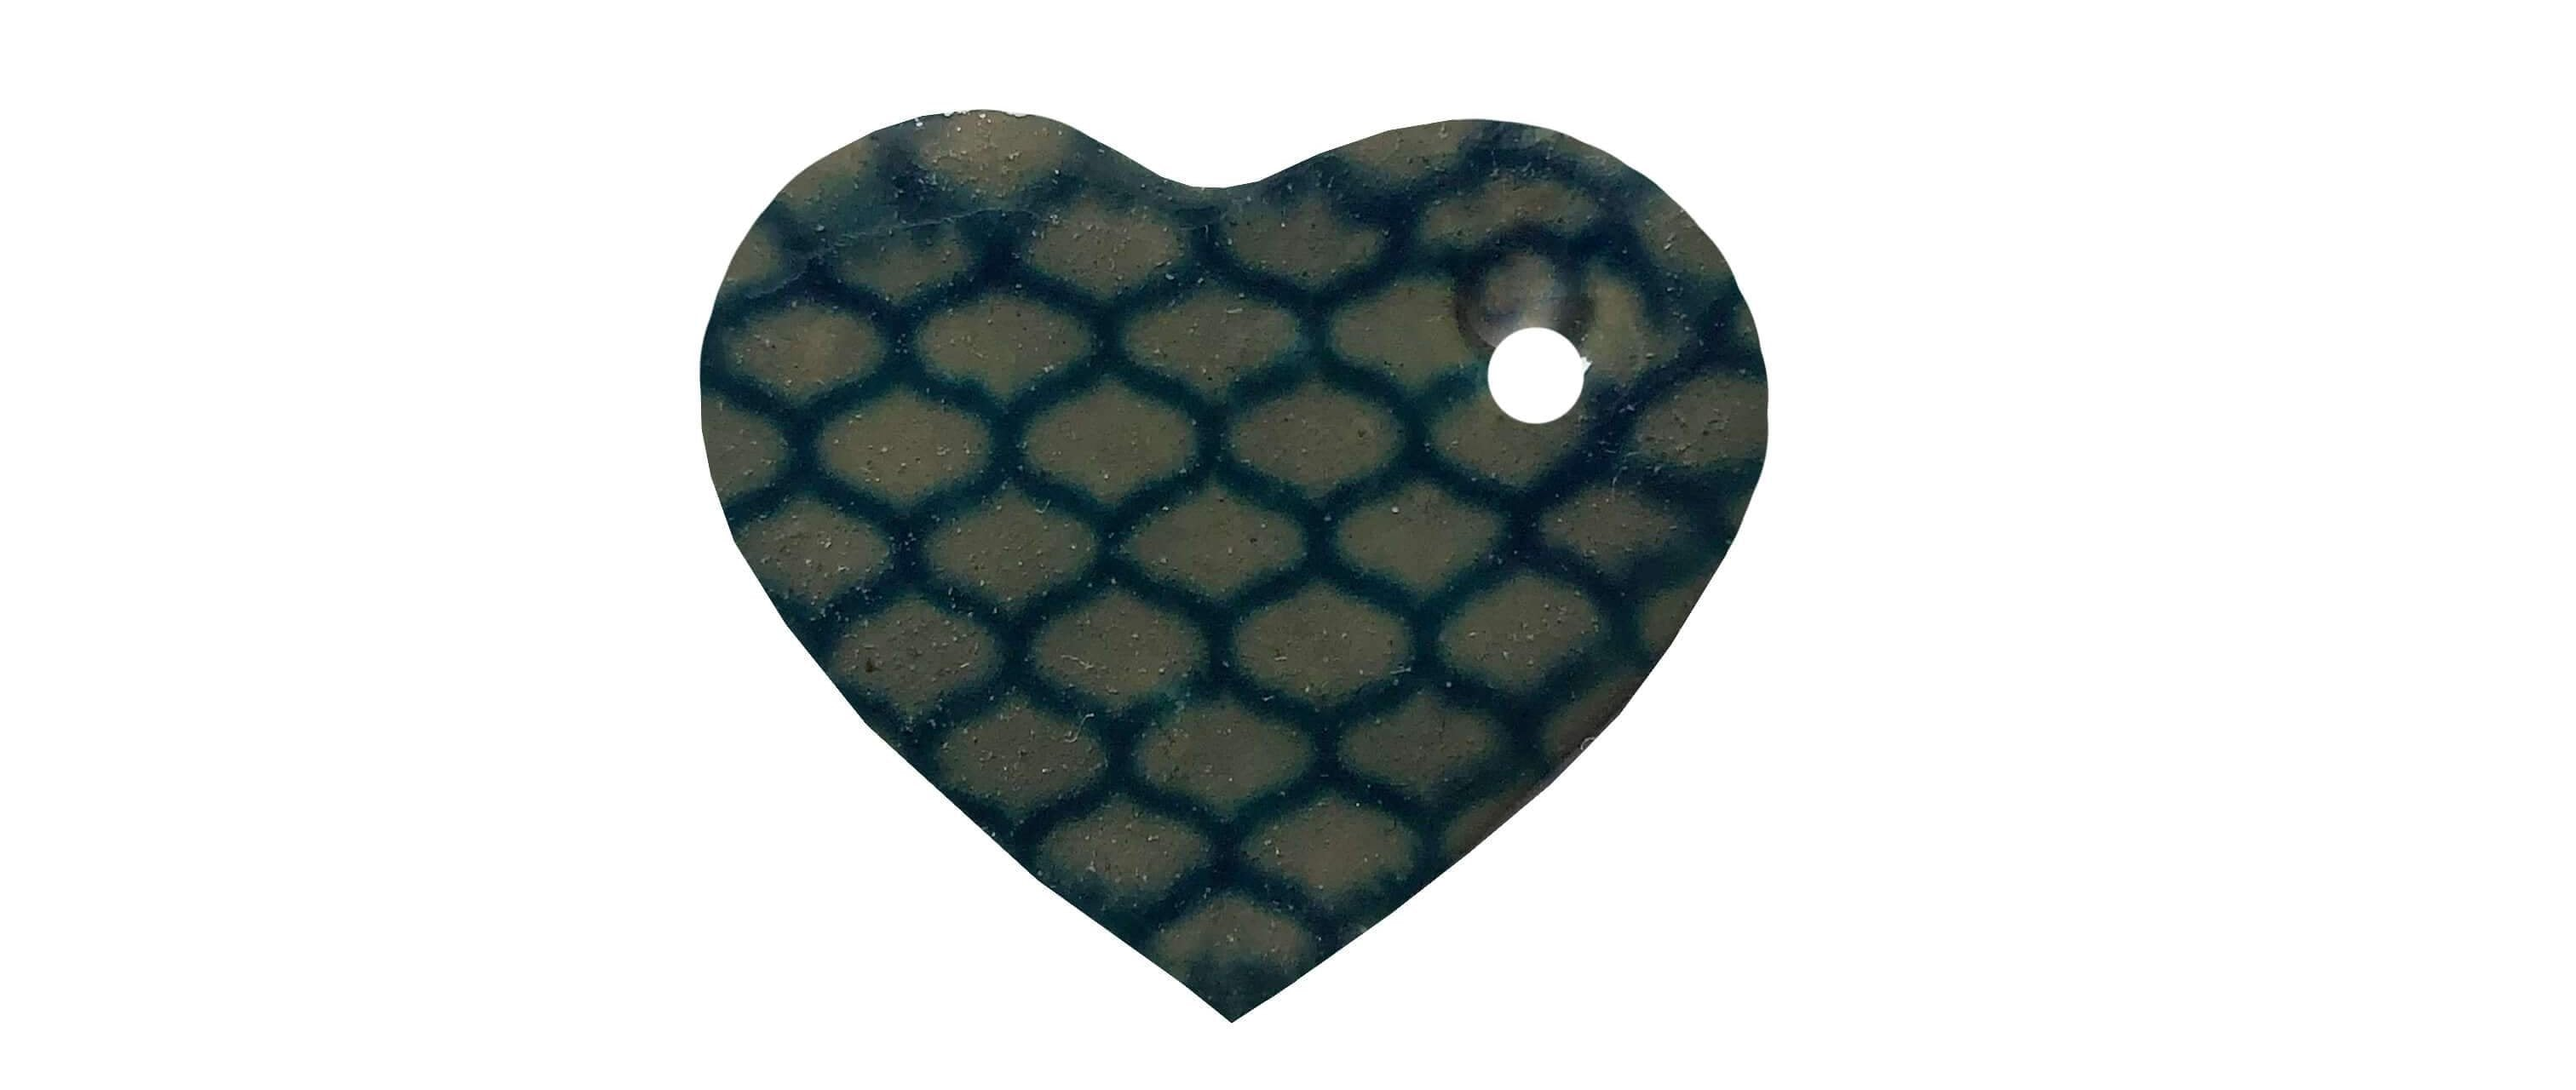 Black and green heart-shaped ceramic dog name tag